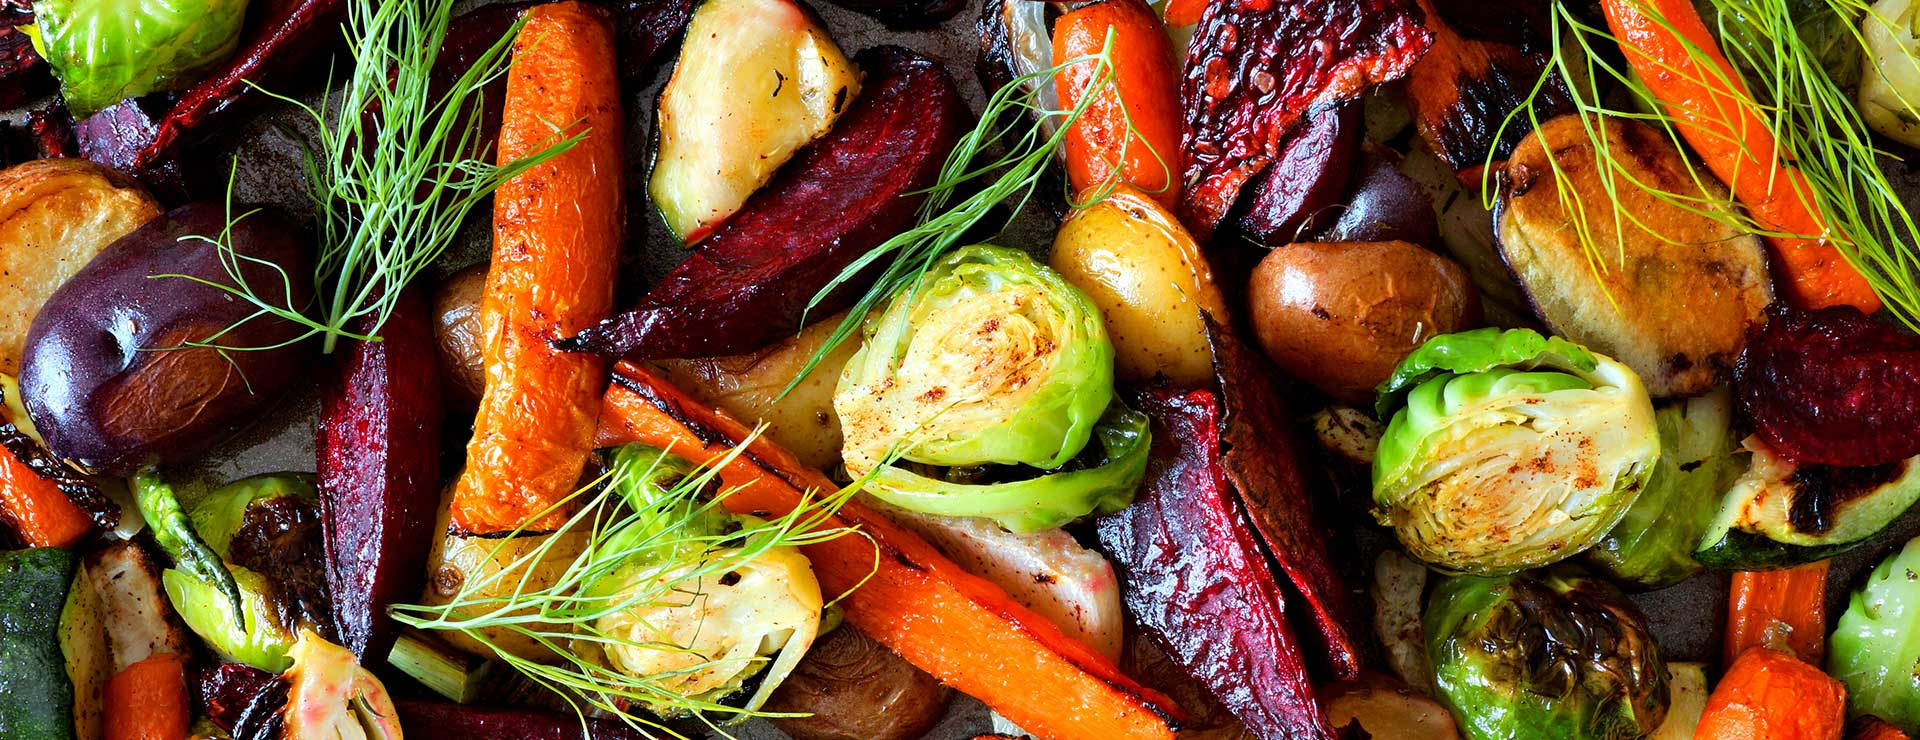 A colorful close up of roasted vegetables.